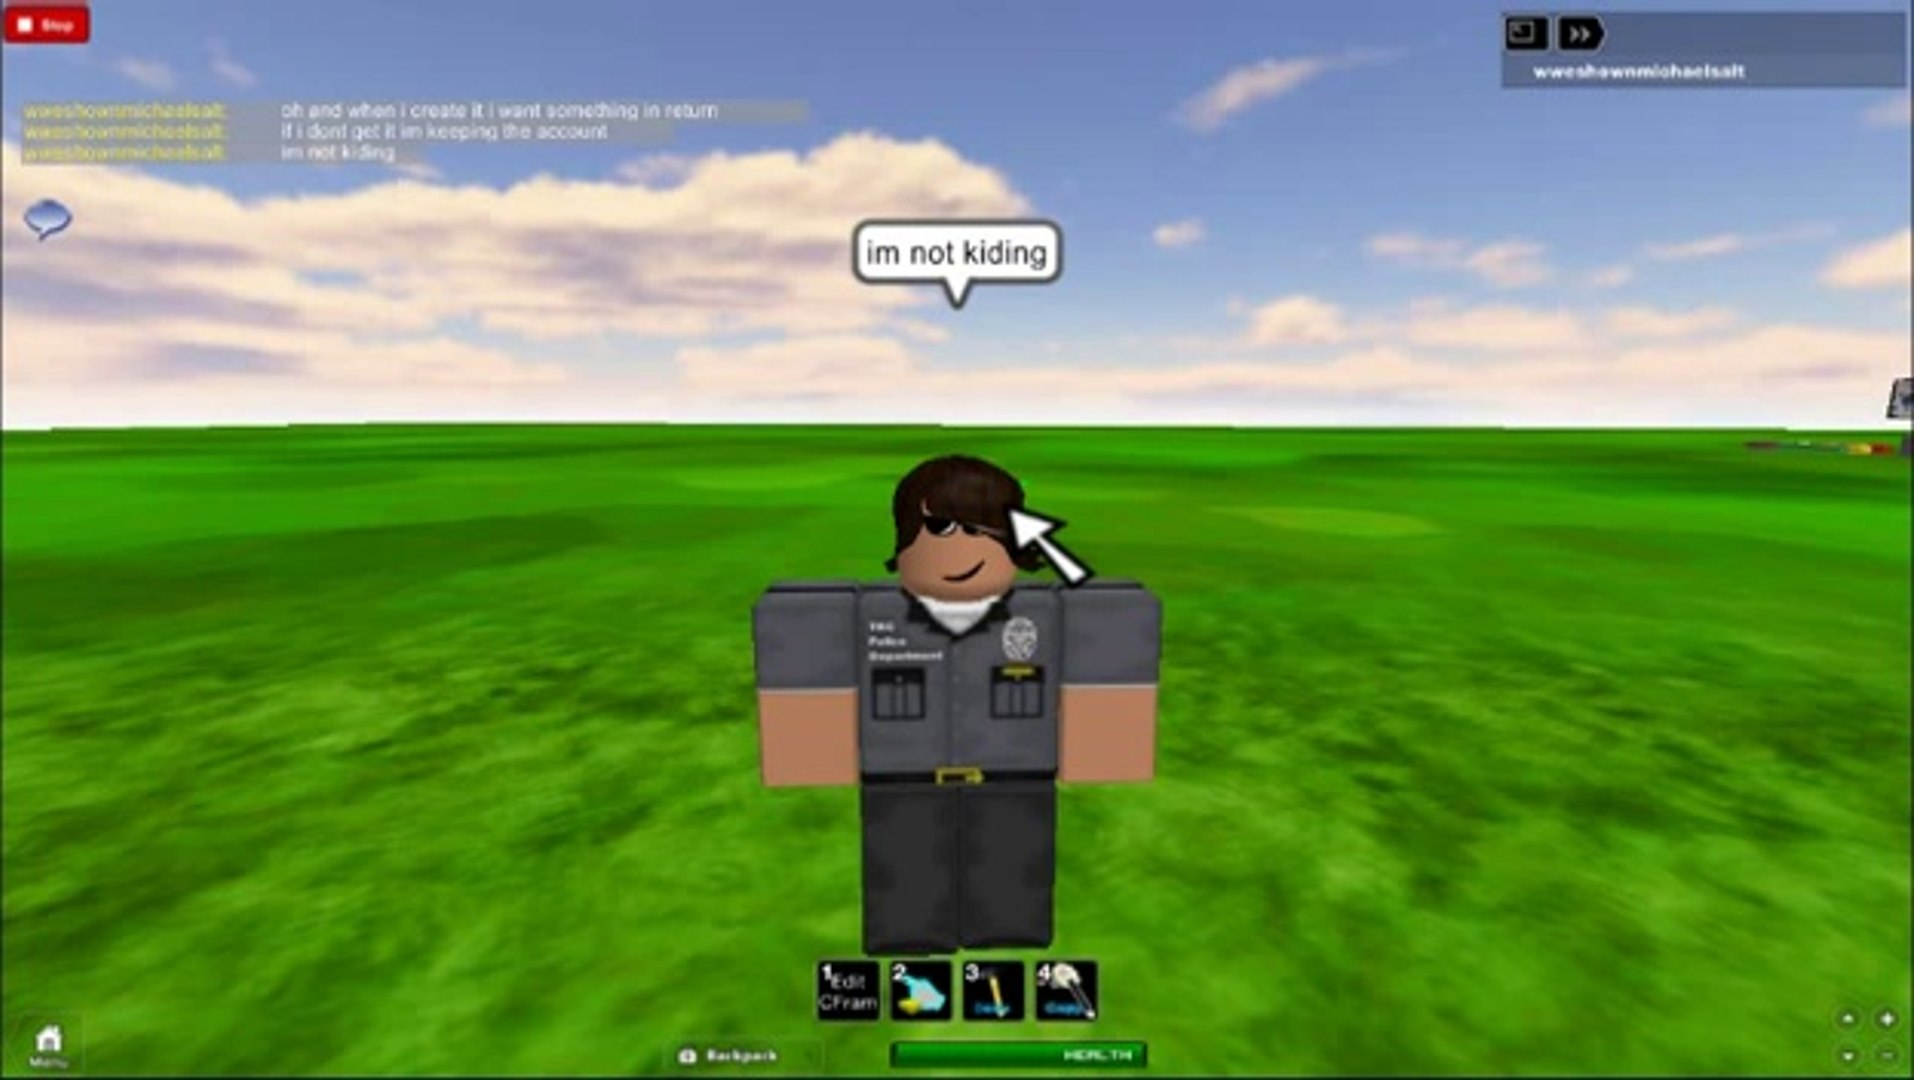 Selling Sell Account Roblox Playerup Accounts Playerup Com Buy Sell Accounts Roblox Im Making Roblox Accounts And Selling It Sorry For The Mess Up In The Video Video Dailymotion